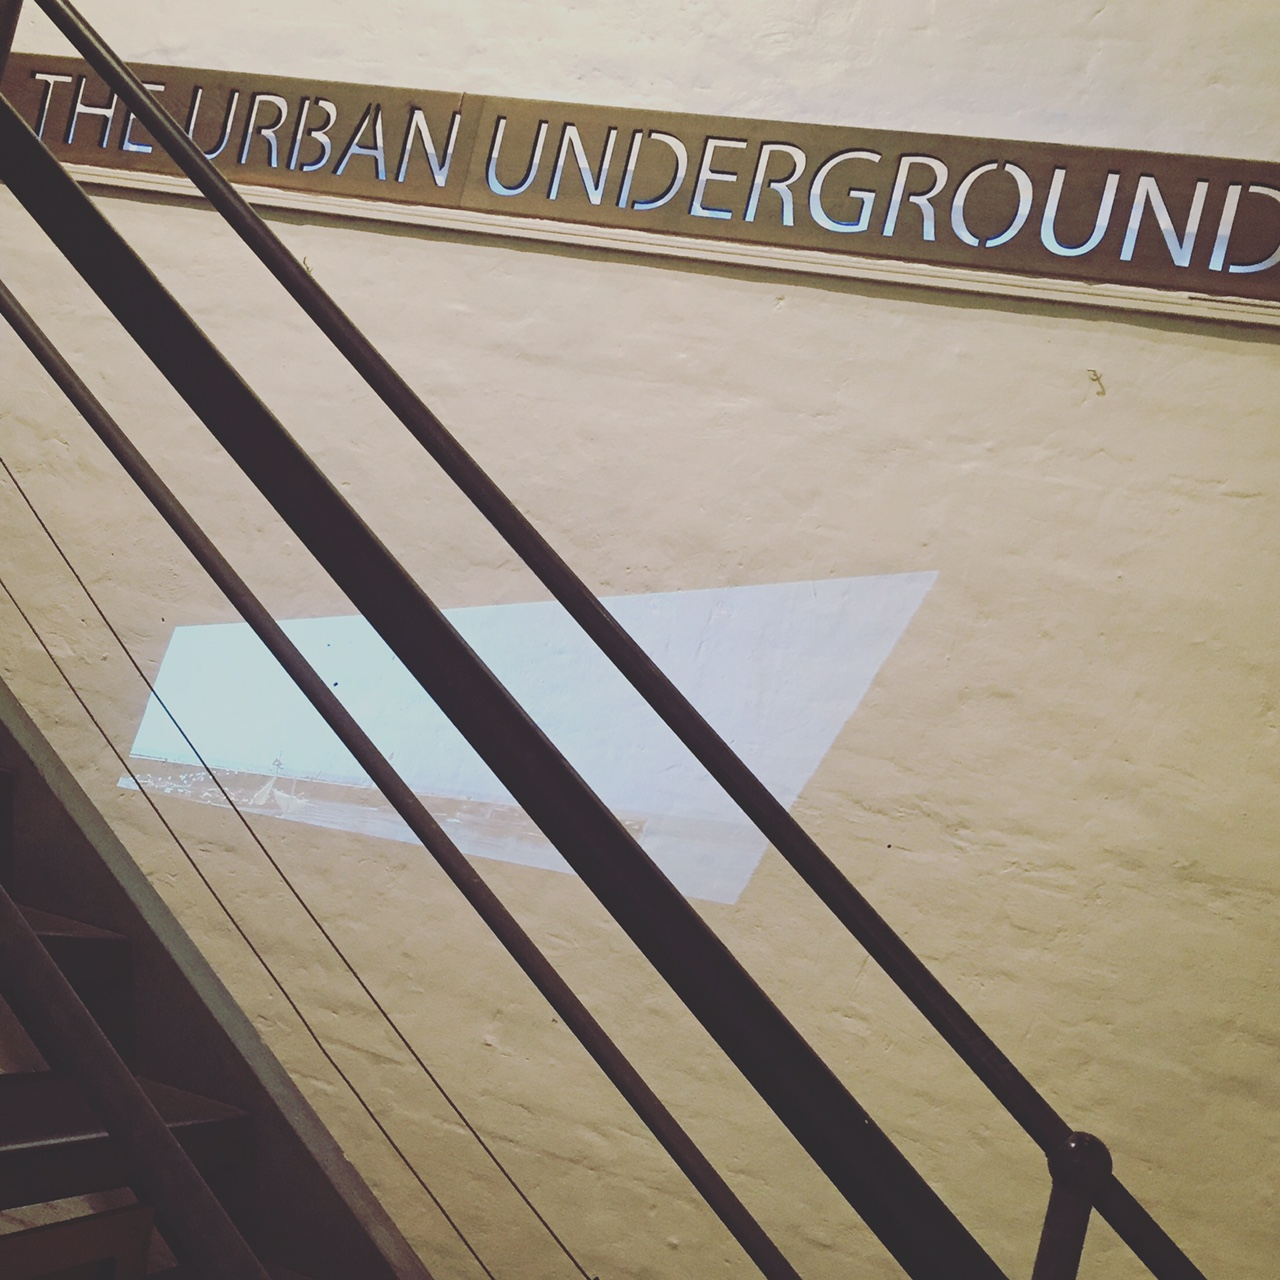 The Urban Underground